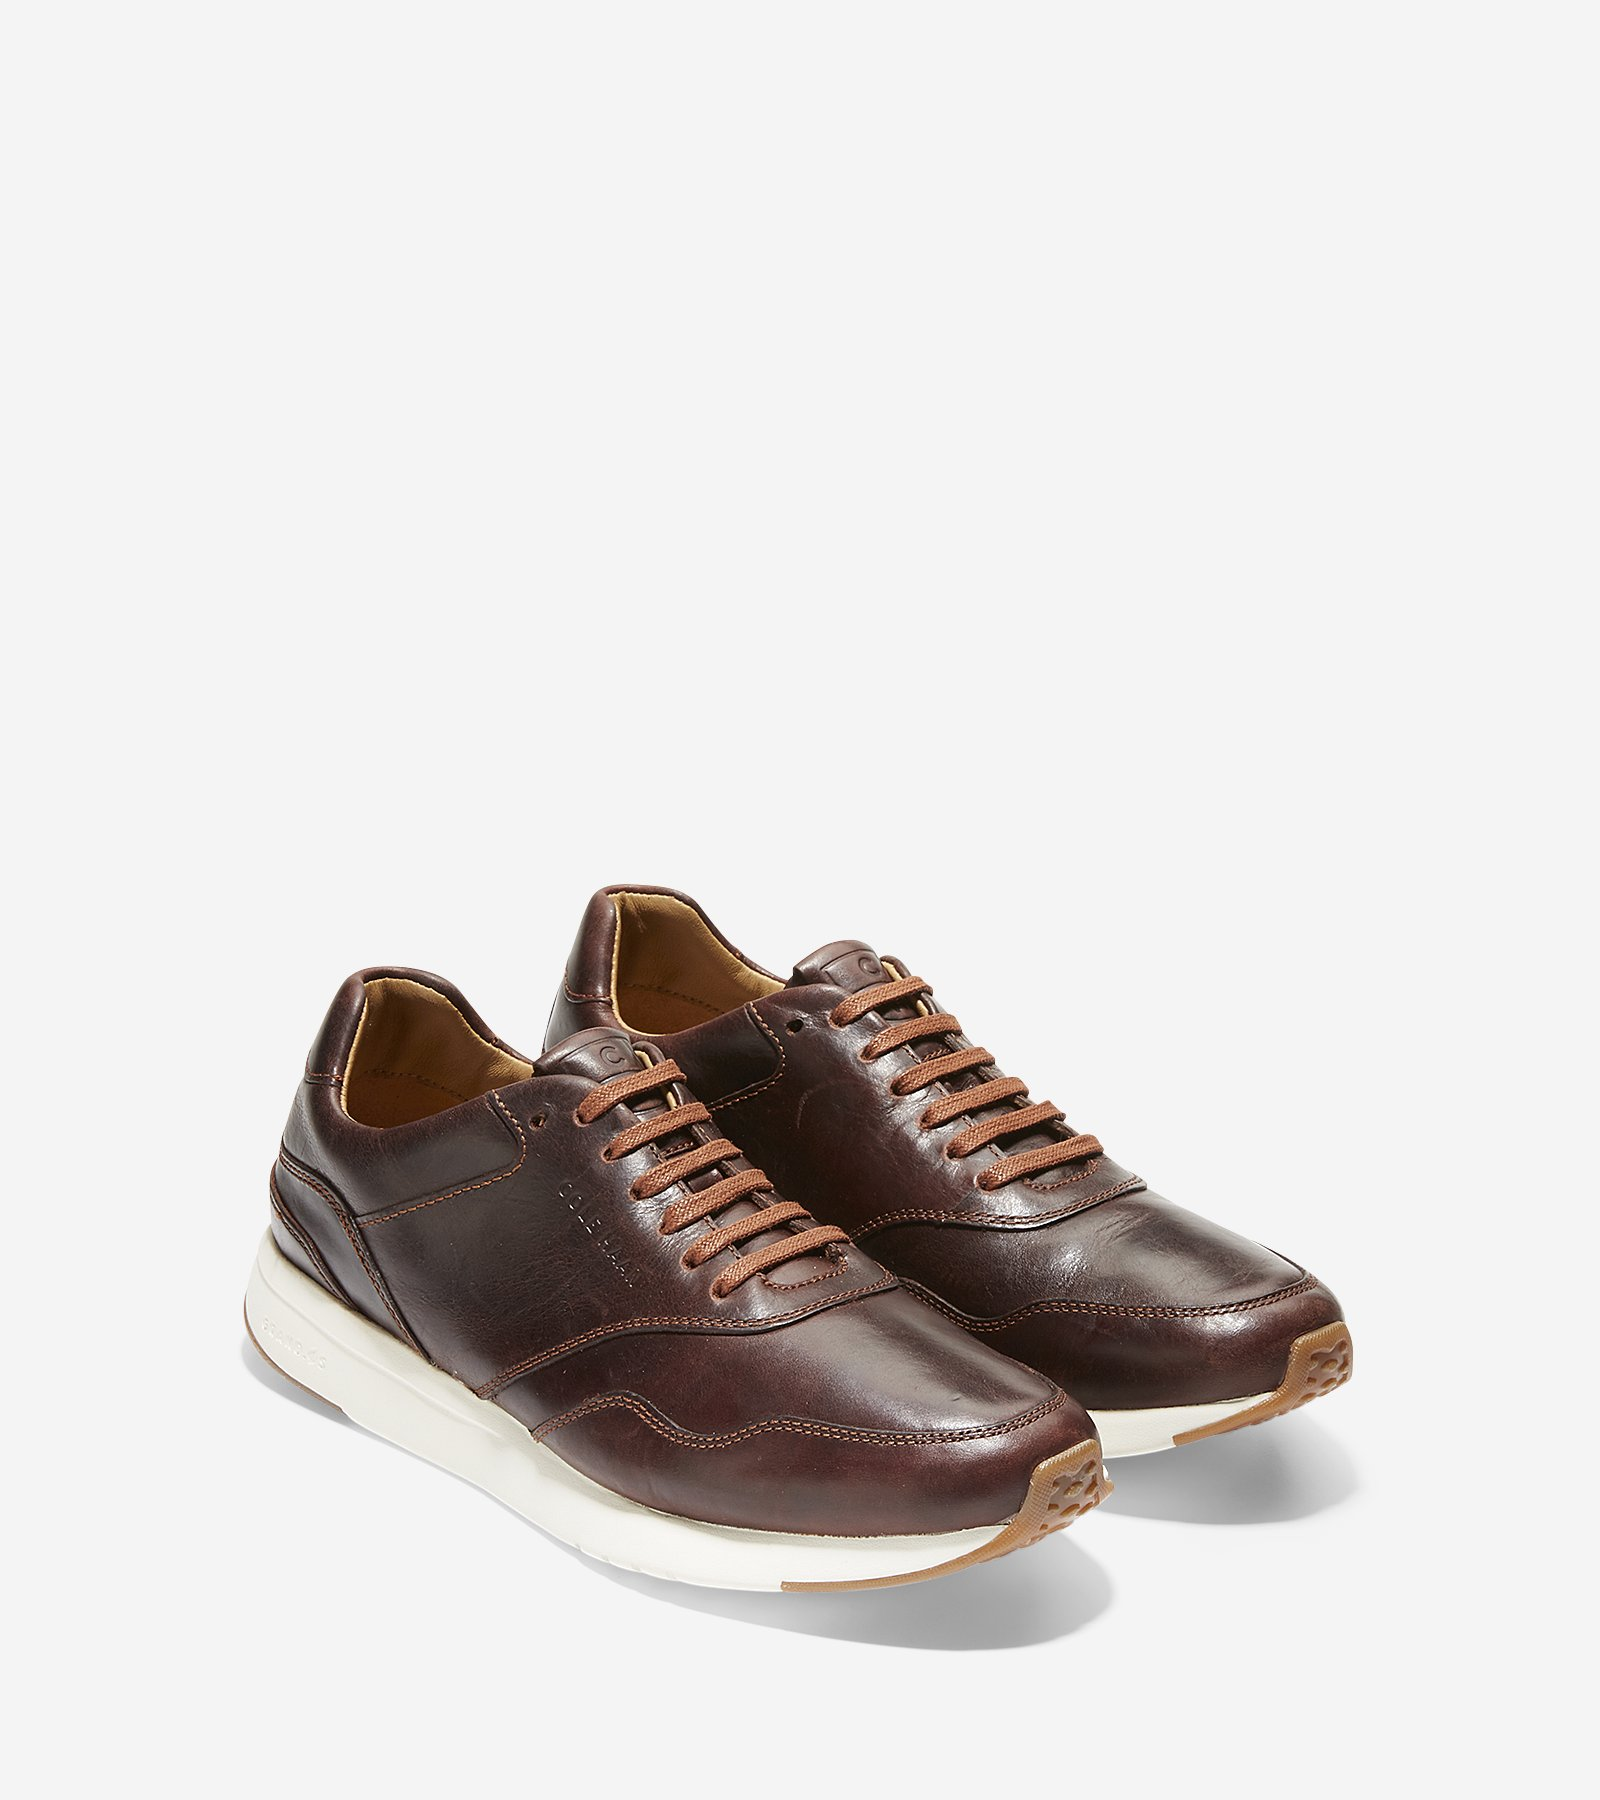 Cole Haan_GrandPro Runner_Torto ise Shell Print Leather (2)